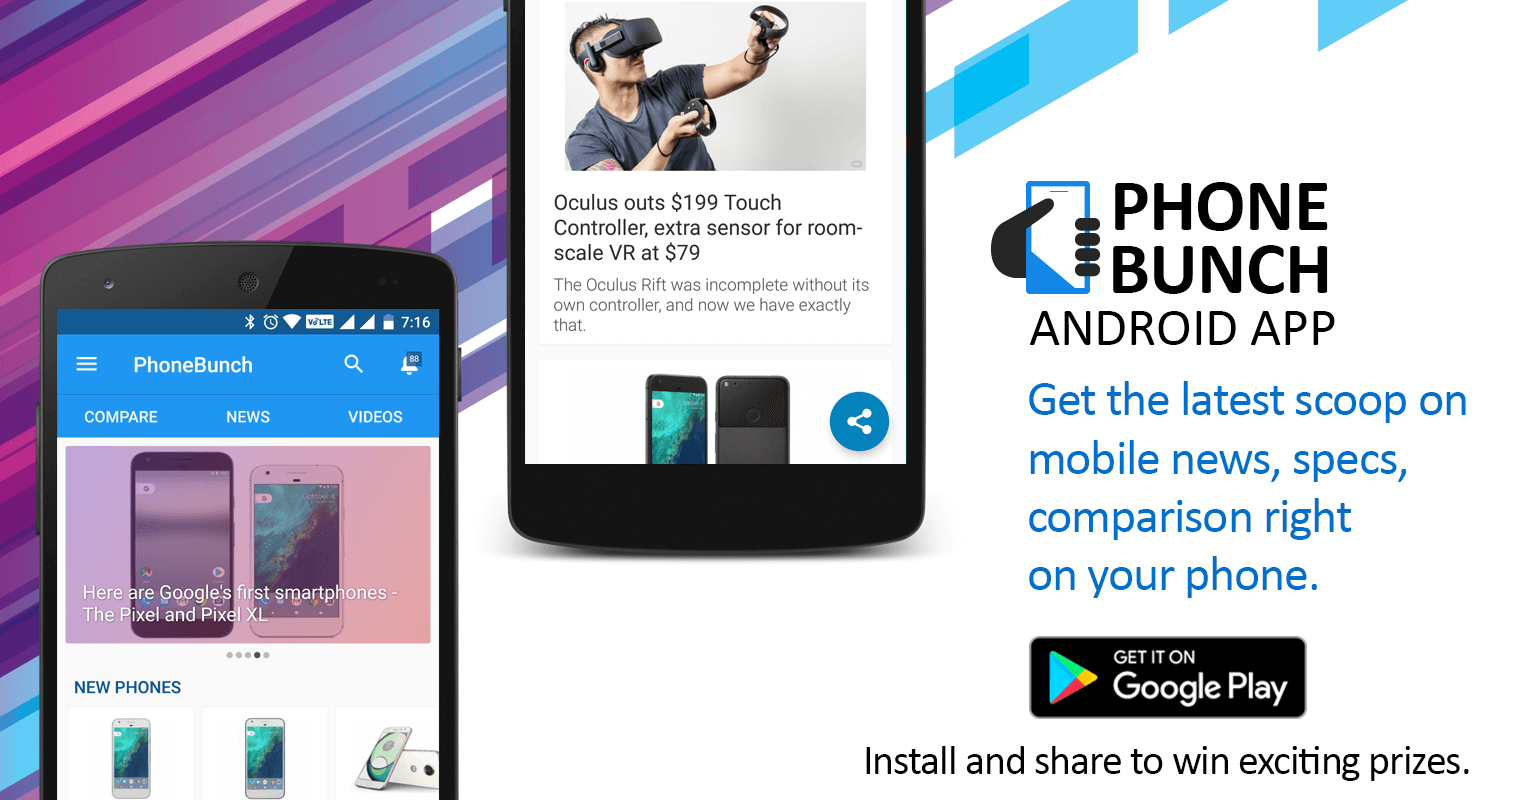 Its Finally Here Our Phonebunch Android App Built From The Ground Up For The Best Mobile Experience Android Apps Best Mobile App